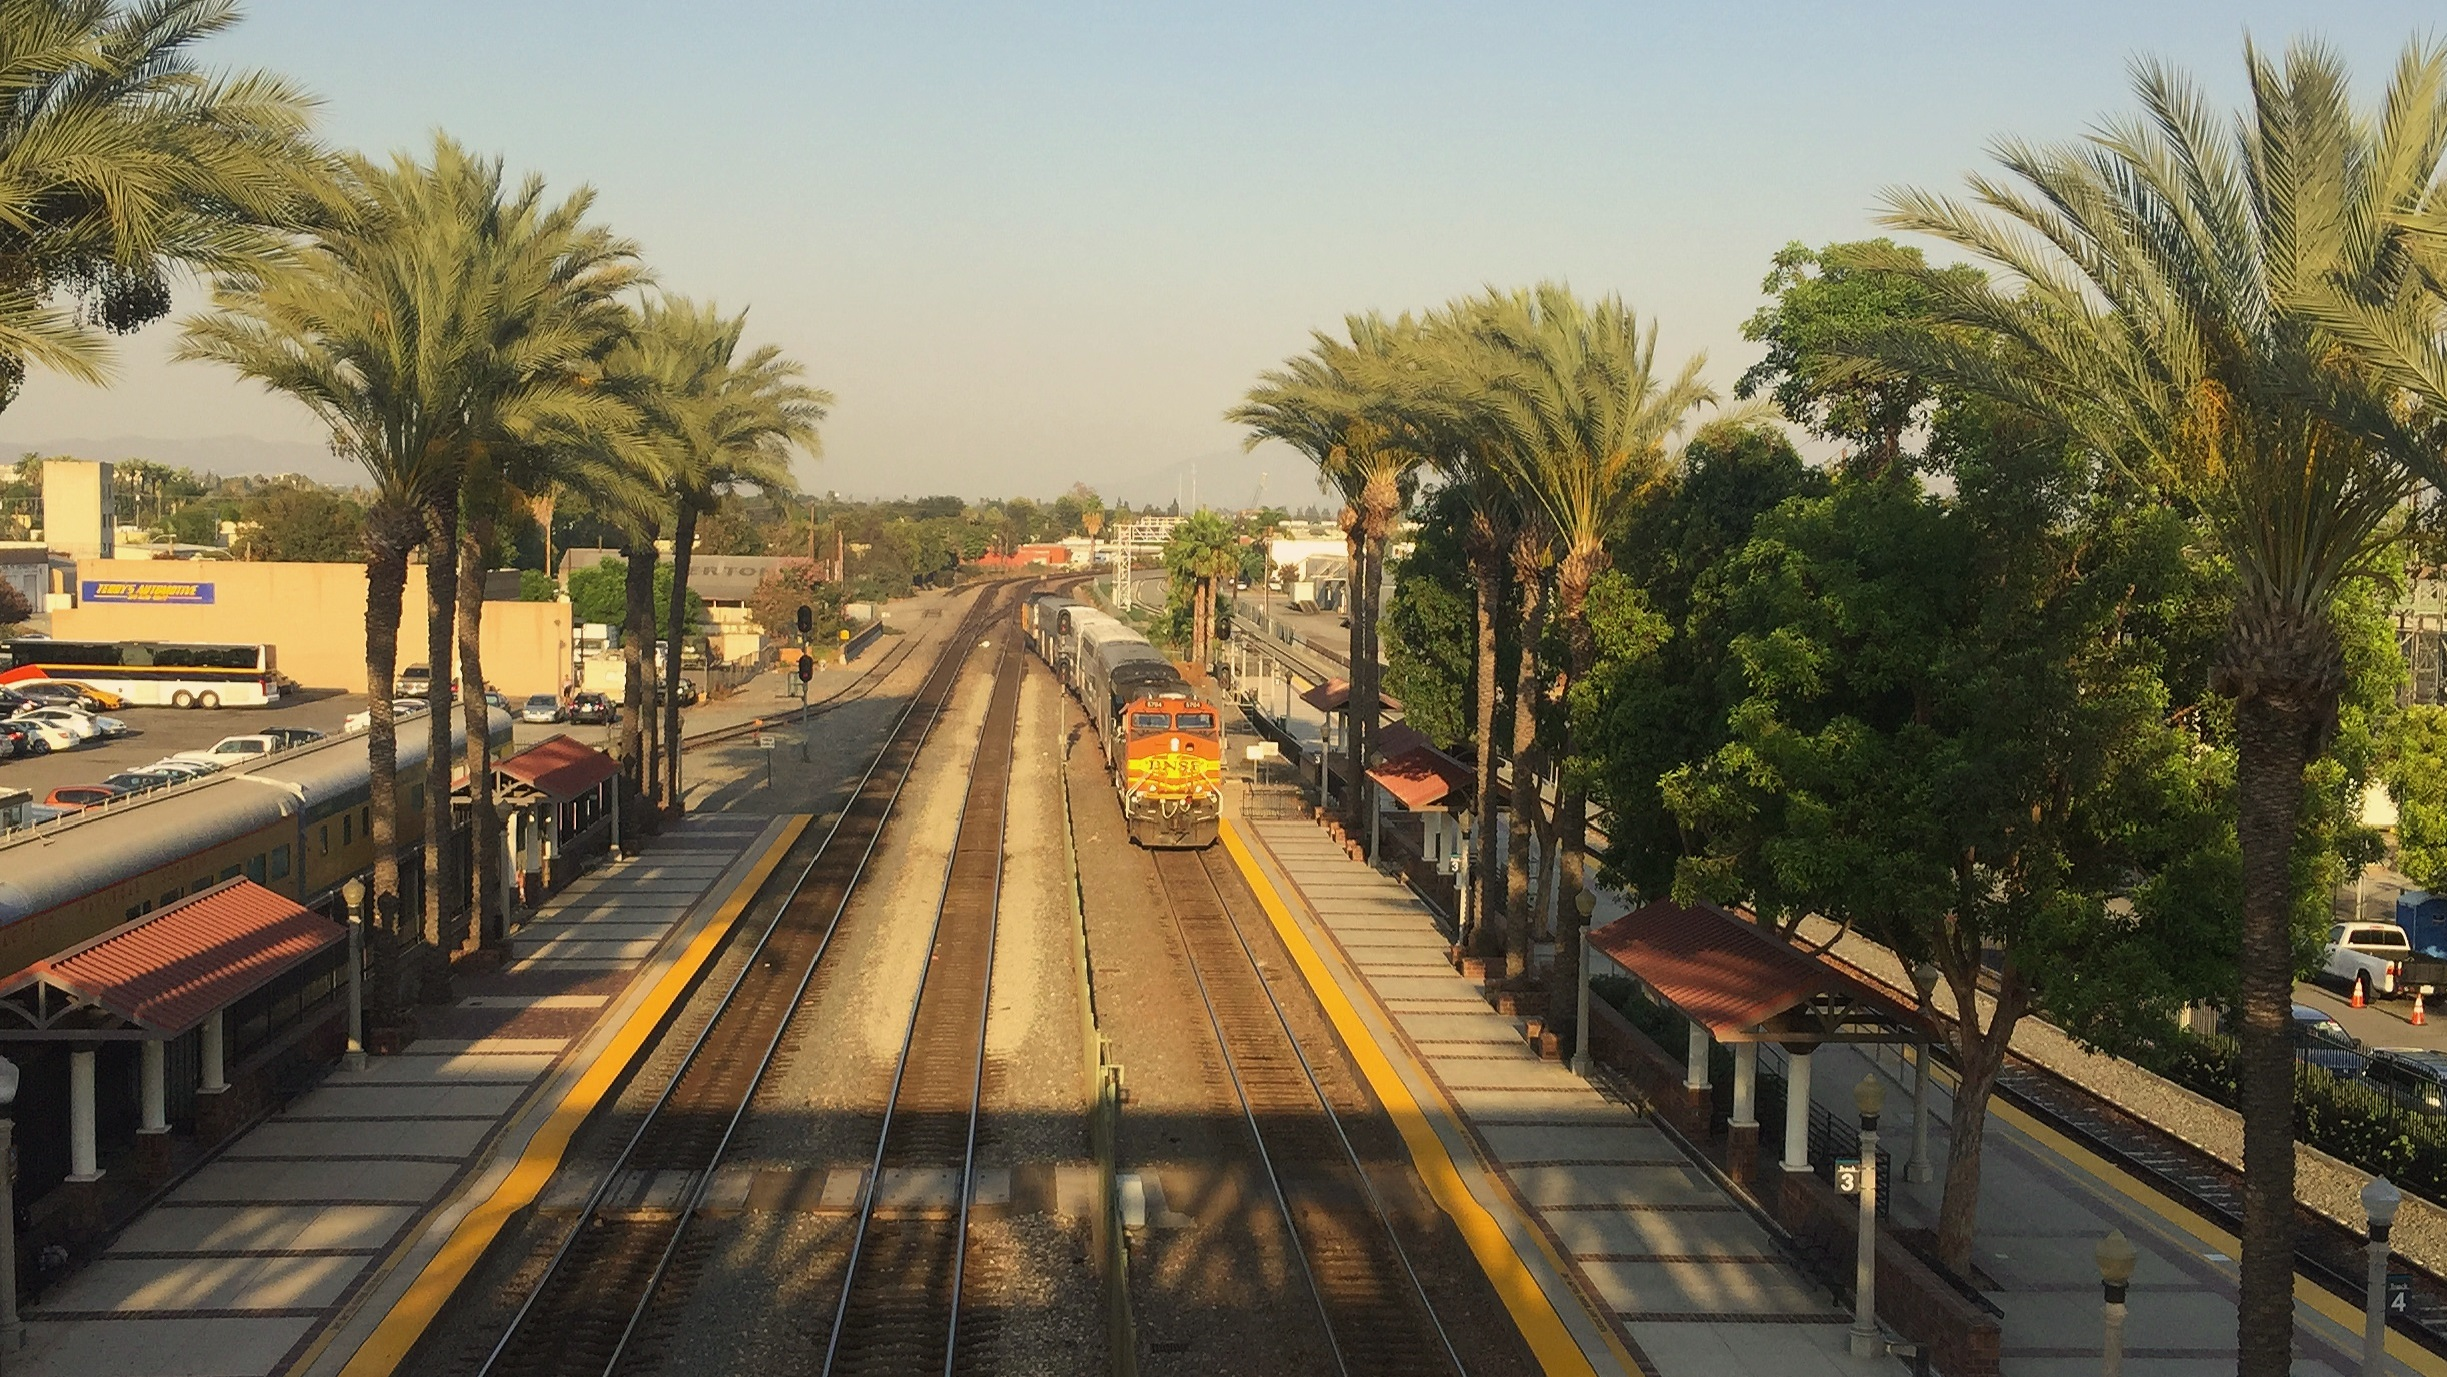 A 91 Line Metrolink train departs from Fullerton, CA, with a leased BNSF AC44 on the rear. Photo by Sergio Magallon, 2016.